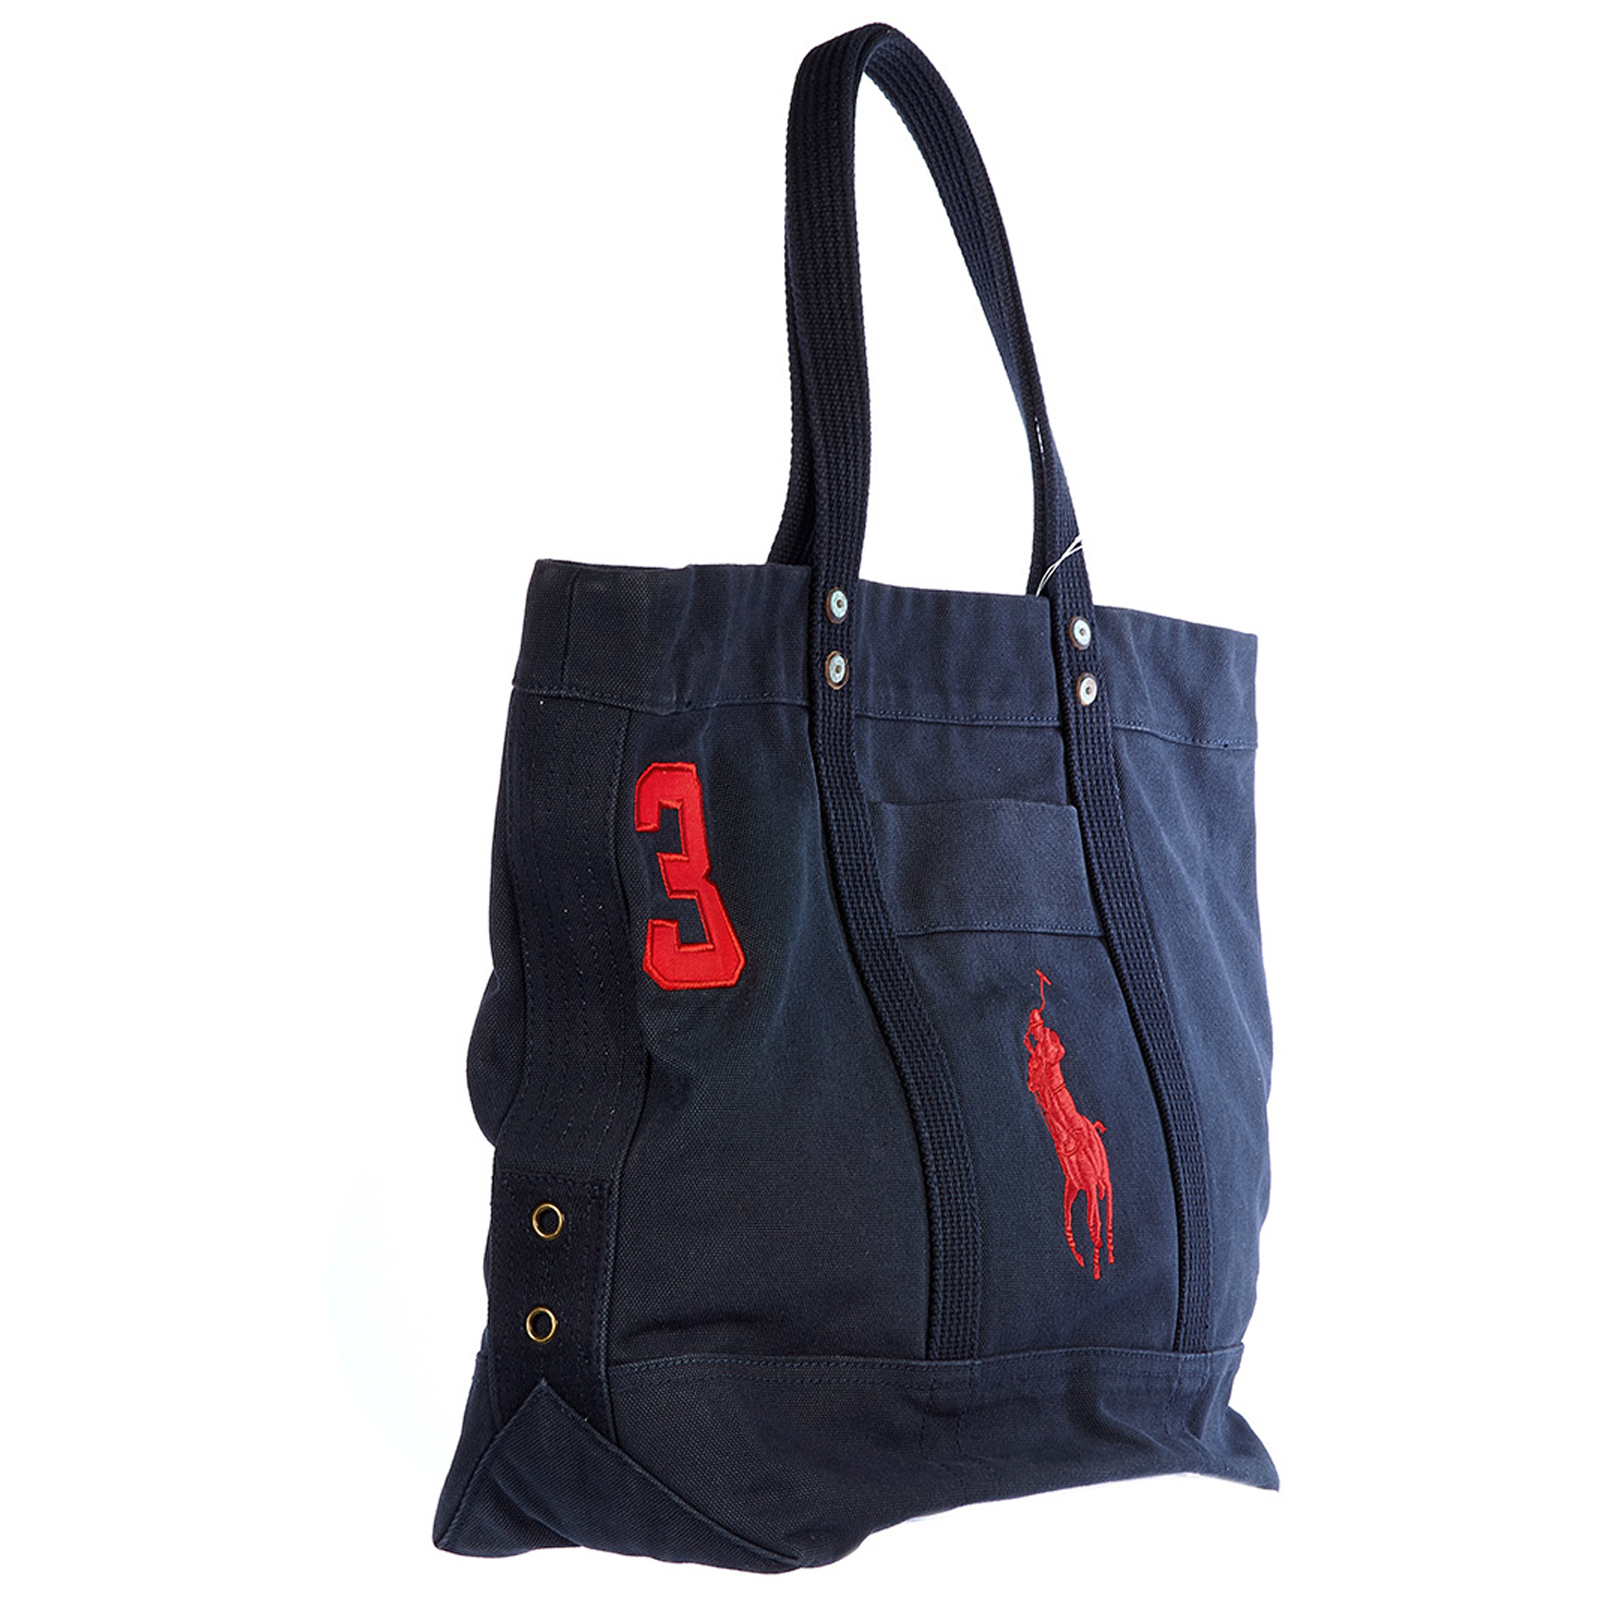 182649a6f0328 Shopping bag Polo Ralph Lauren A92 AL336 C5079 V401 blu